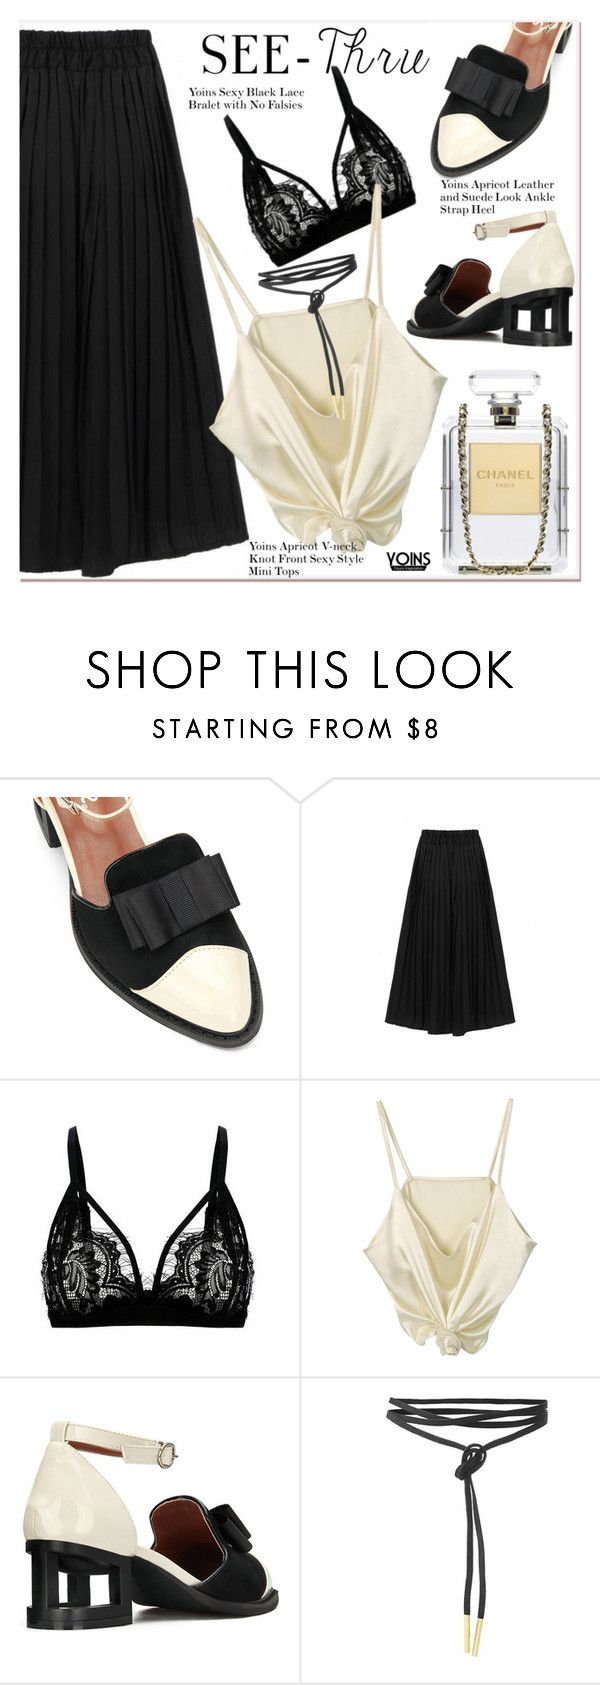 """""""It's All Clear Now"""" by paculi ❤ liked on Polyvore featuring Chanel, clear and Seethru"""